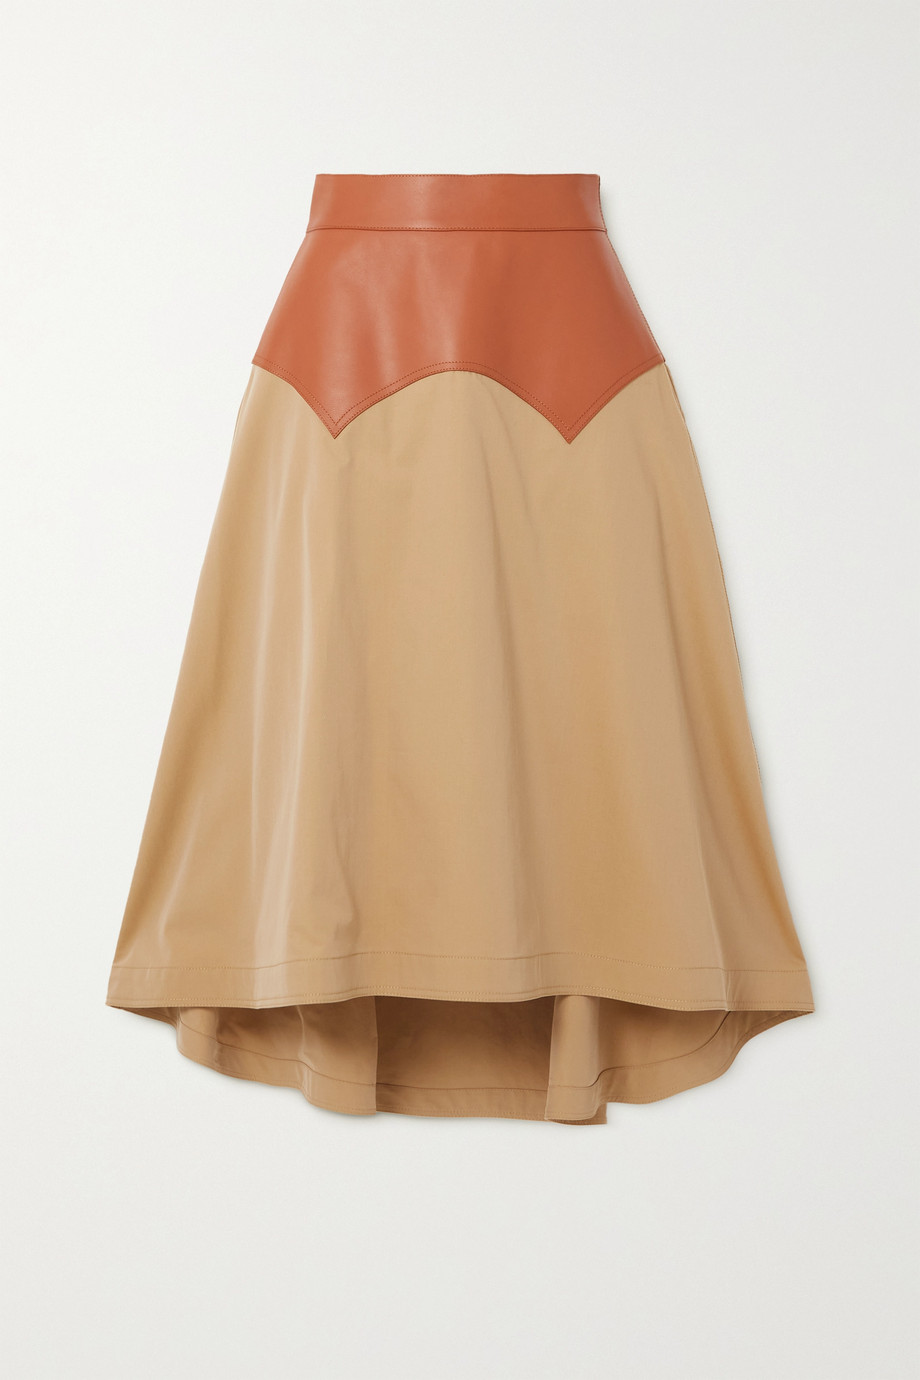 Loewe Obi asymmetric leather and cotton-twill midi skirt